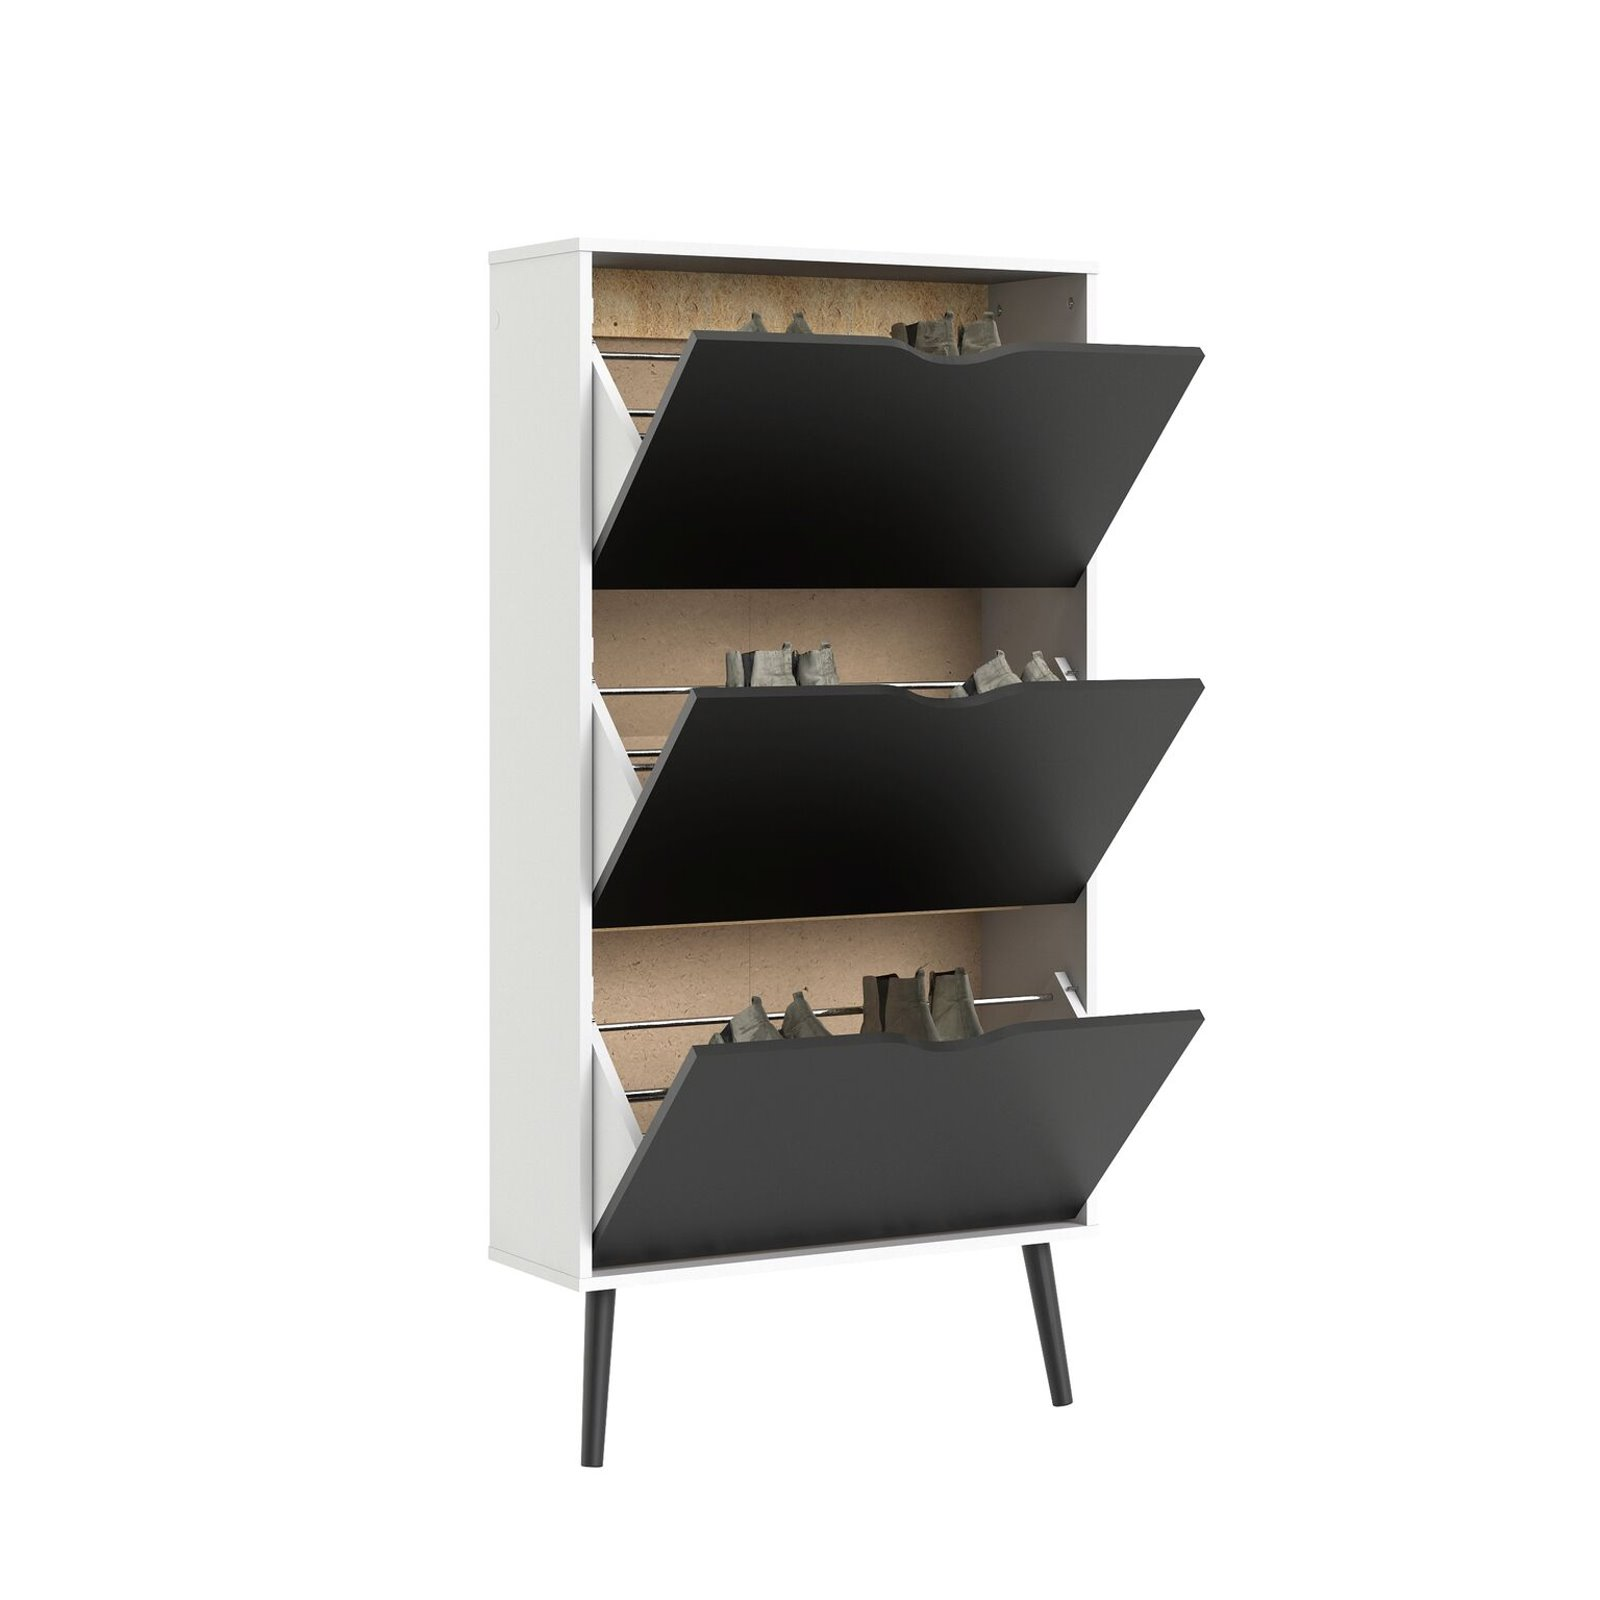 schuhschrank napoli schuhkipper schuhregal flur dielen. Black Bedroom Furniture Sets. Home Design Ideas